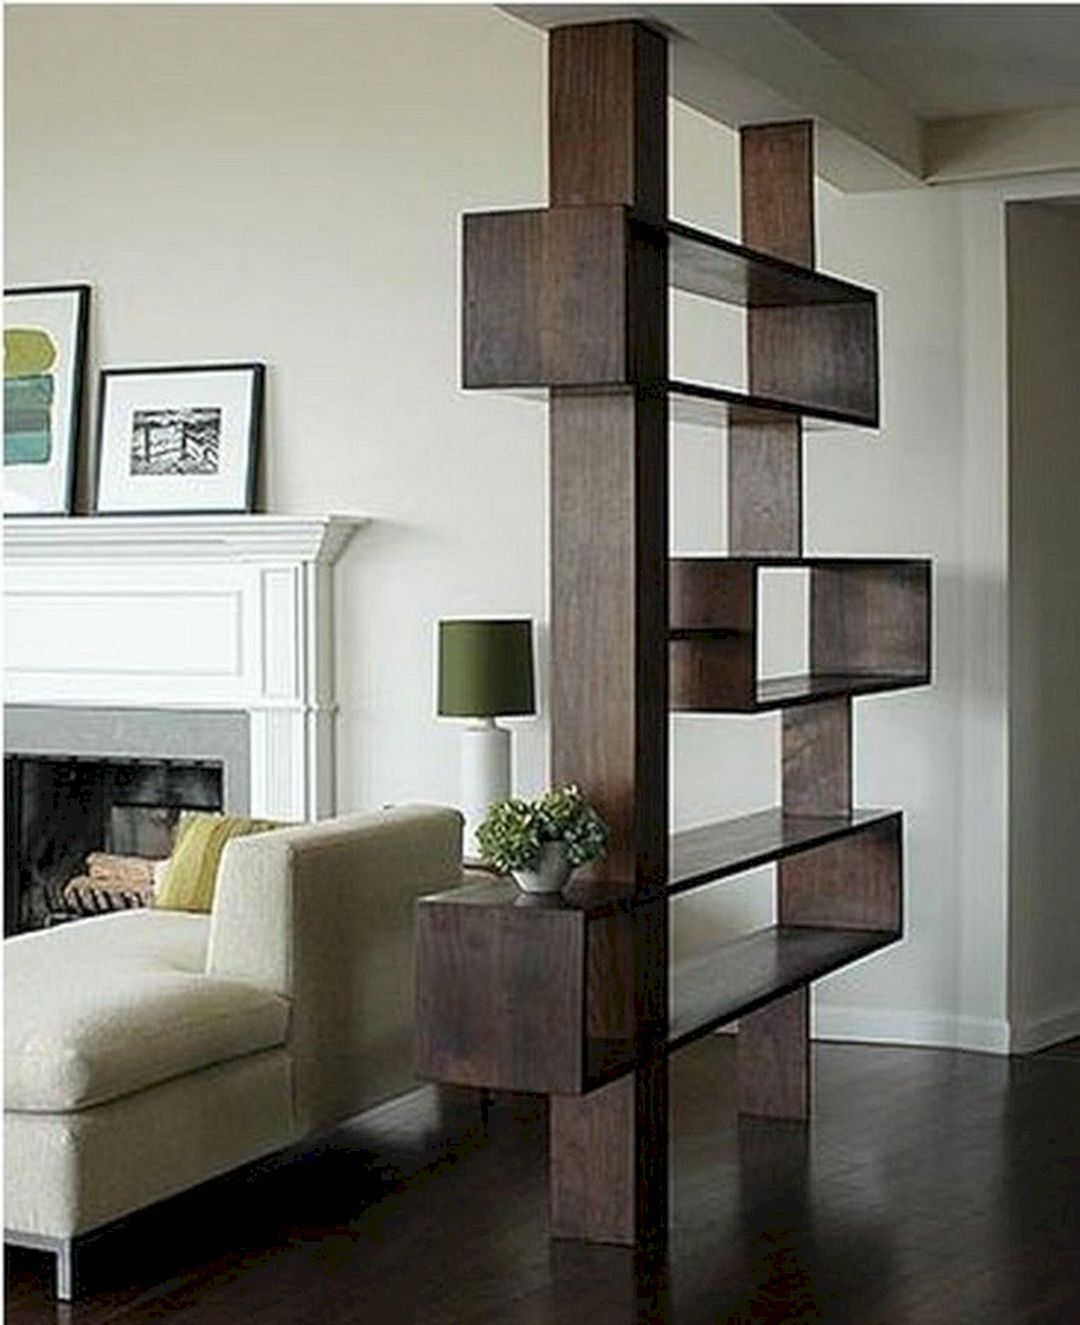 Top 10 Incredible Room Divider Design Ideas You Have To Know In 2020 Living Room Partition Modern Room Divider Living Room Partition Design